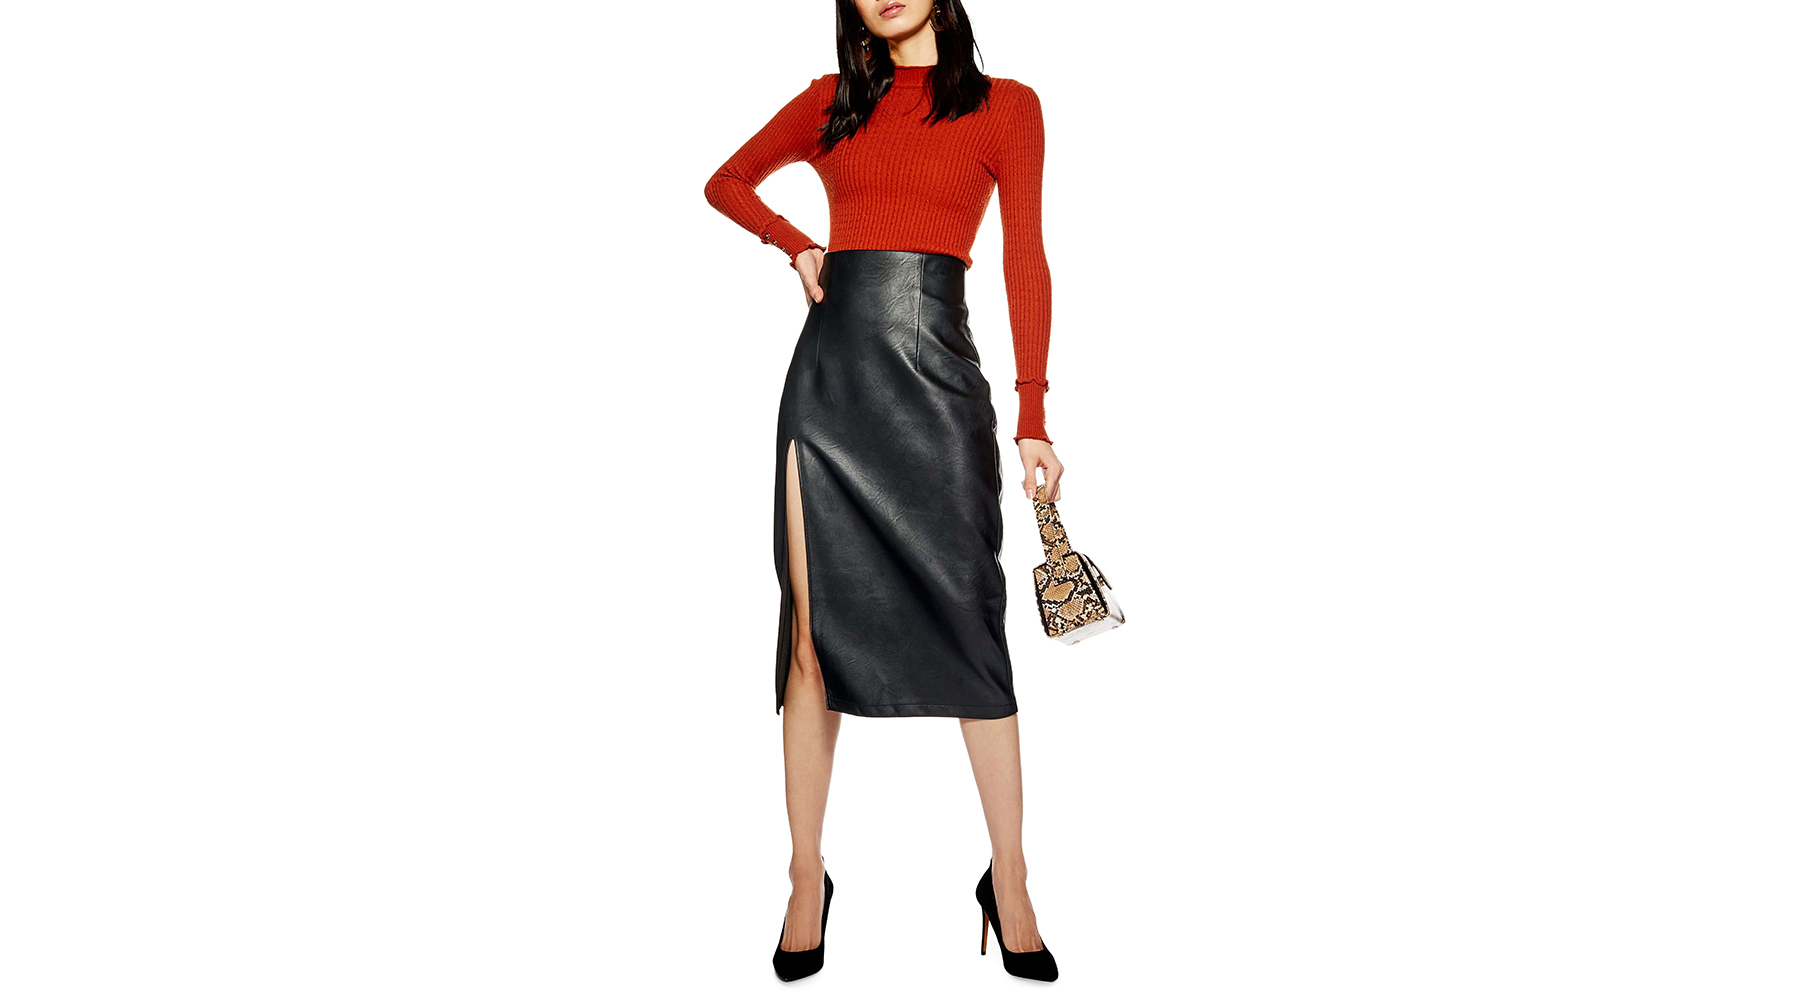 ca46a984b6bb The Best Pencil Skirts for 2019 | Real Simple